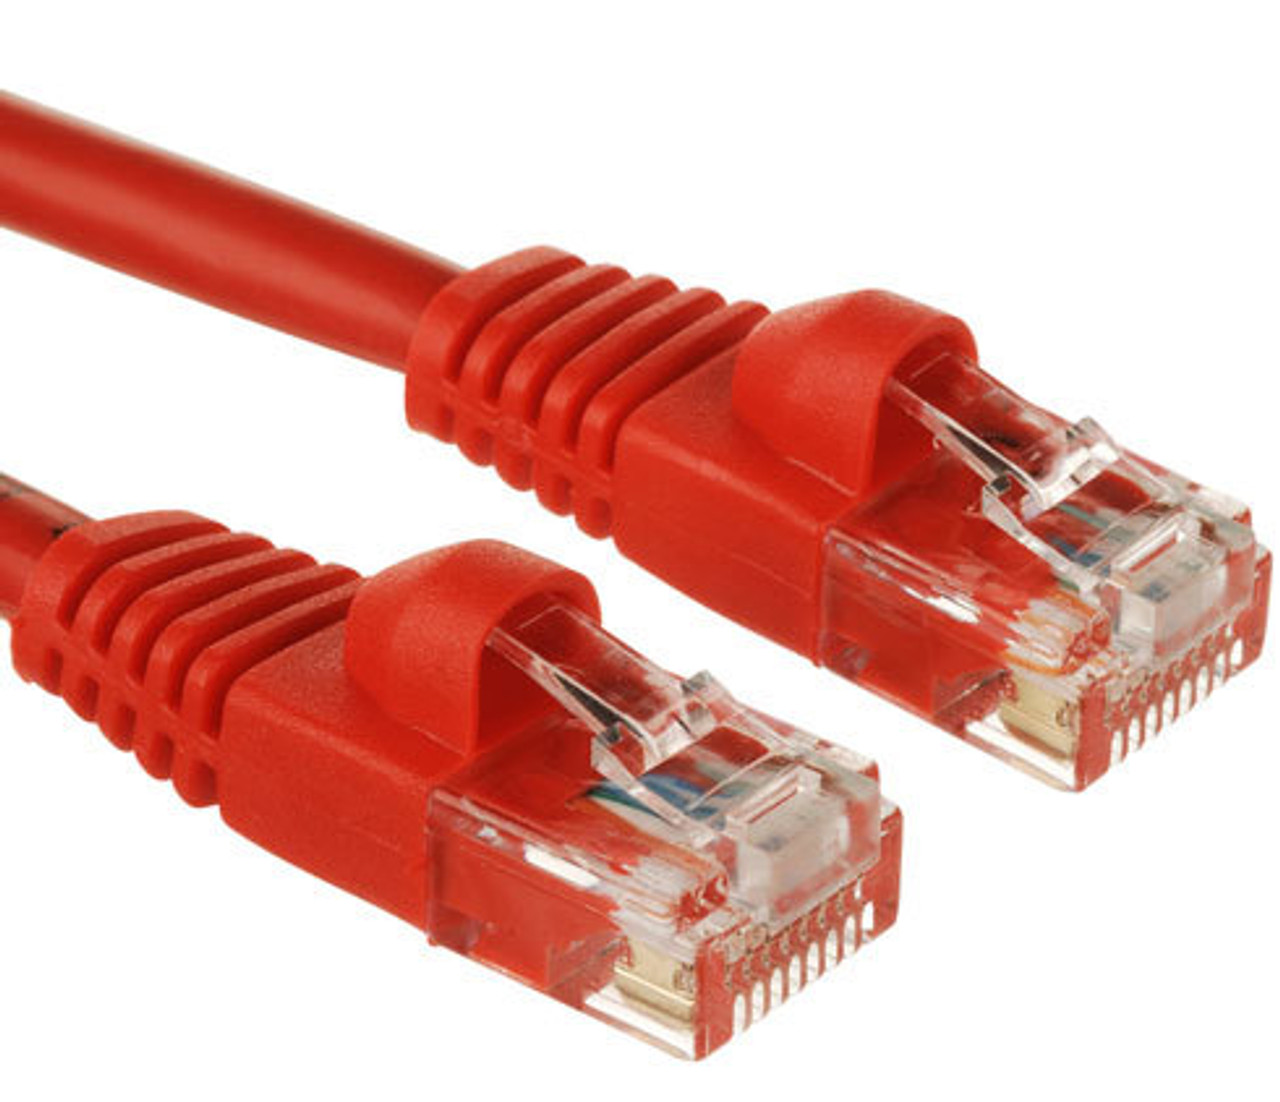 Product image for 0.5M Red Cat5E Cable | CX Computer Superstore